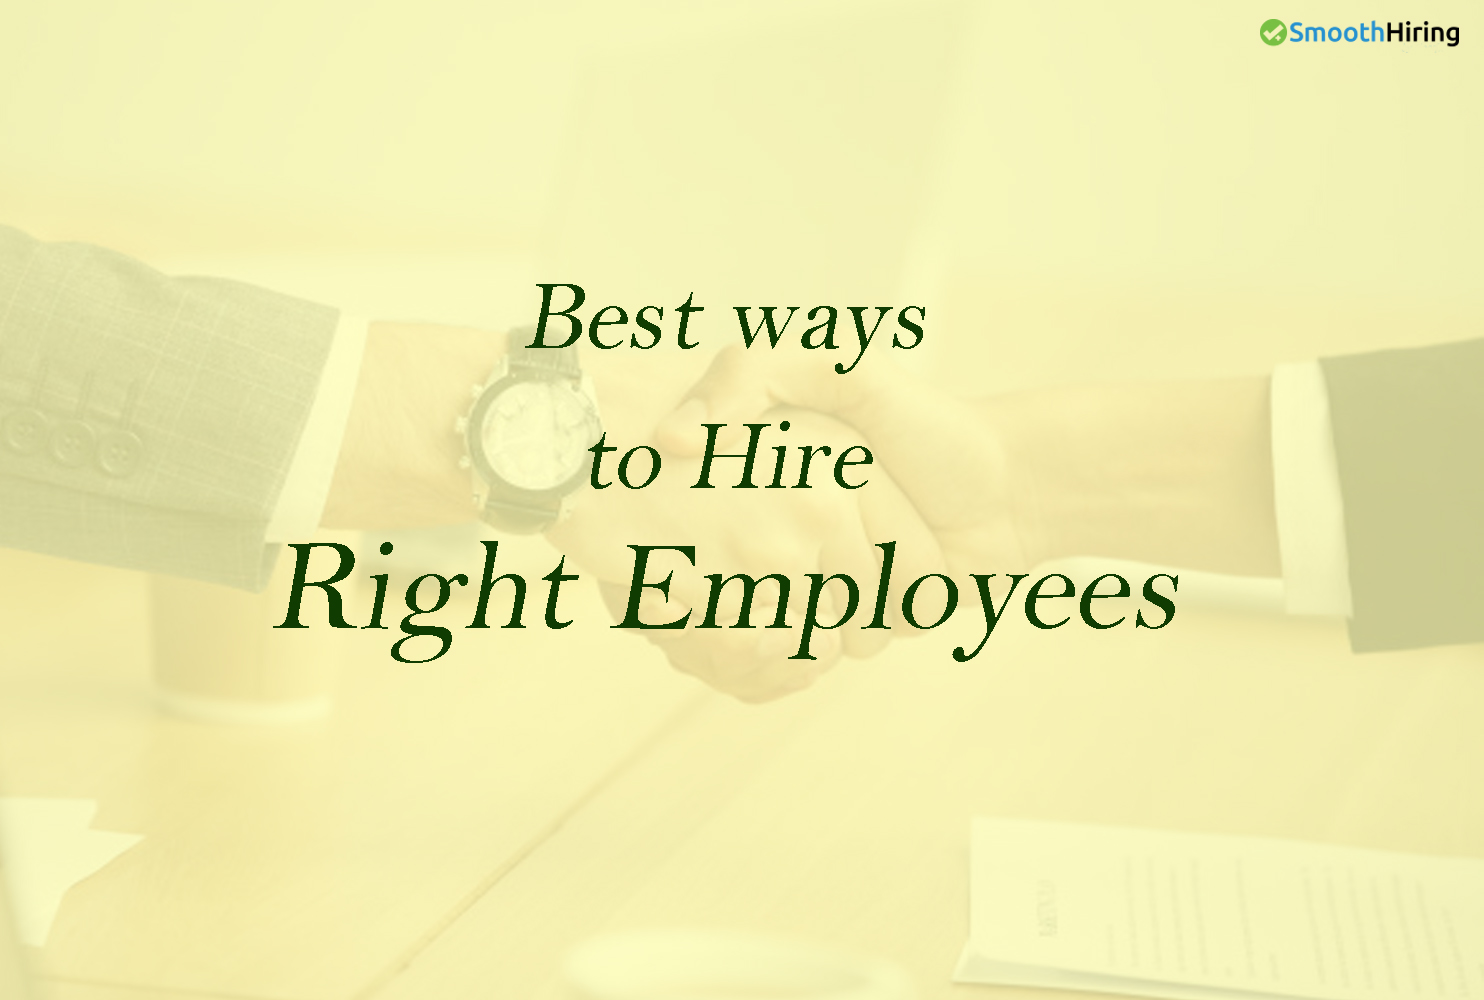 Tips to Hire Employees - SmoothHiring